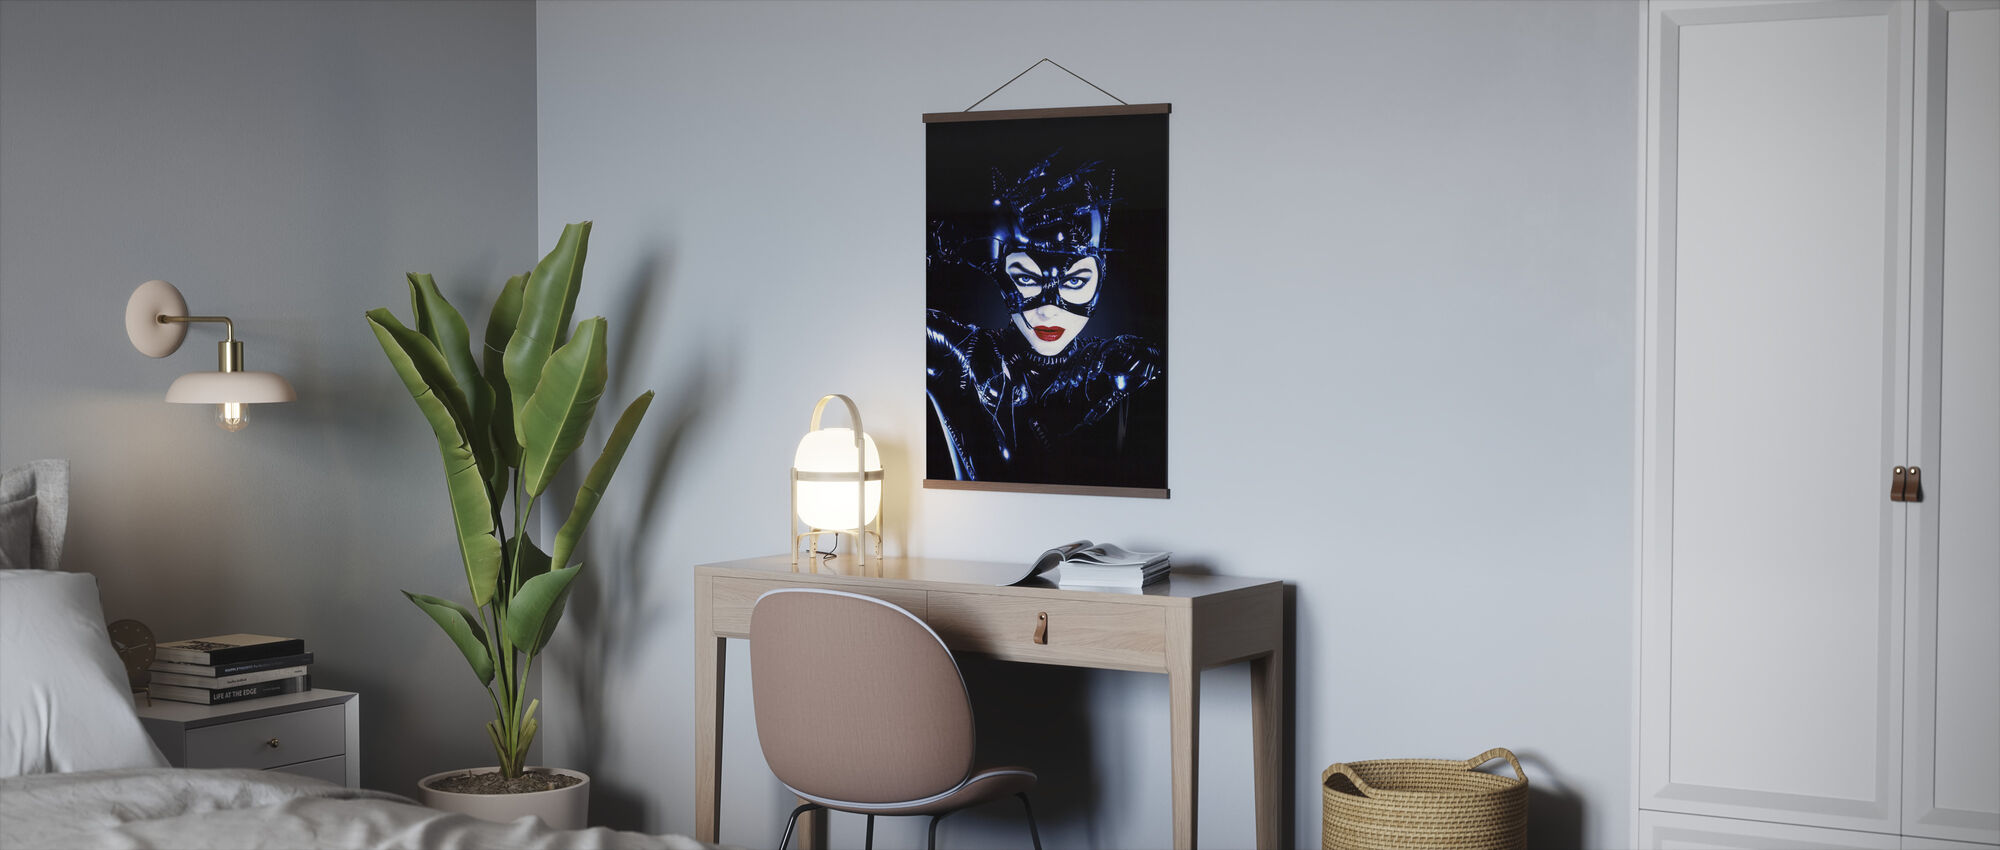 Michelle Pfeiffer in Batman Returns - Poster - Office